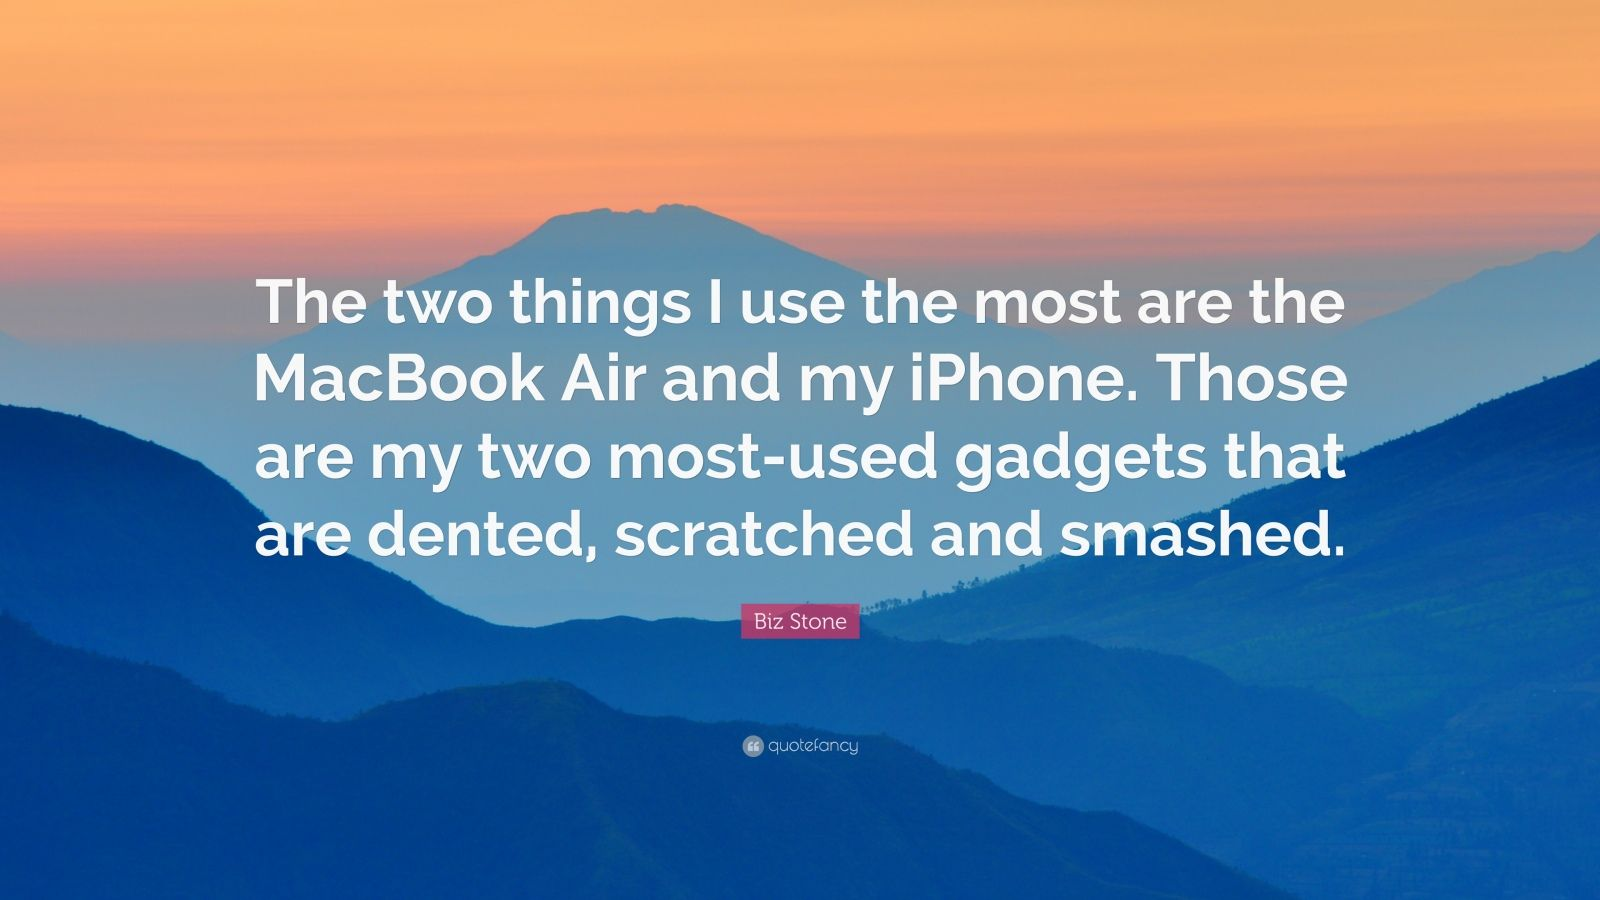 """Biz Stone Quote: """"The two things I use the most are the MacBook Air and my iPhone. Those are my two most-used gadgets that are dented, scratched and smashed."""""""